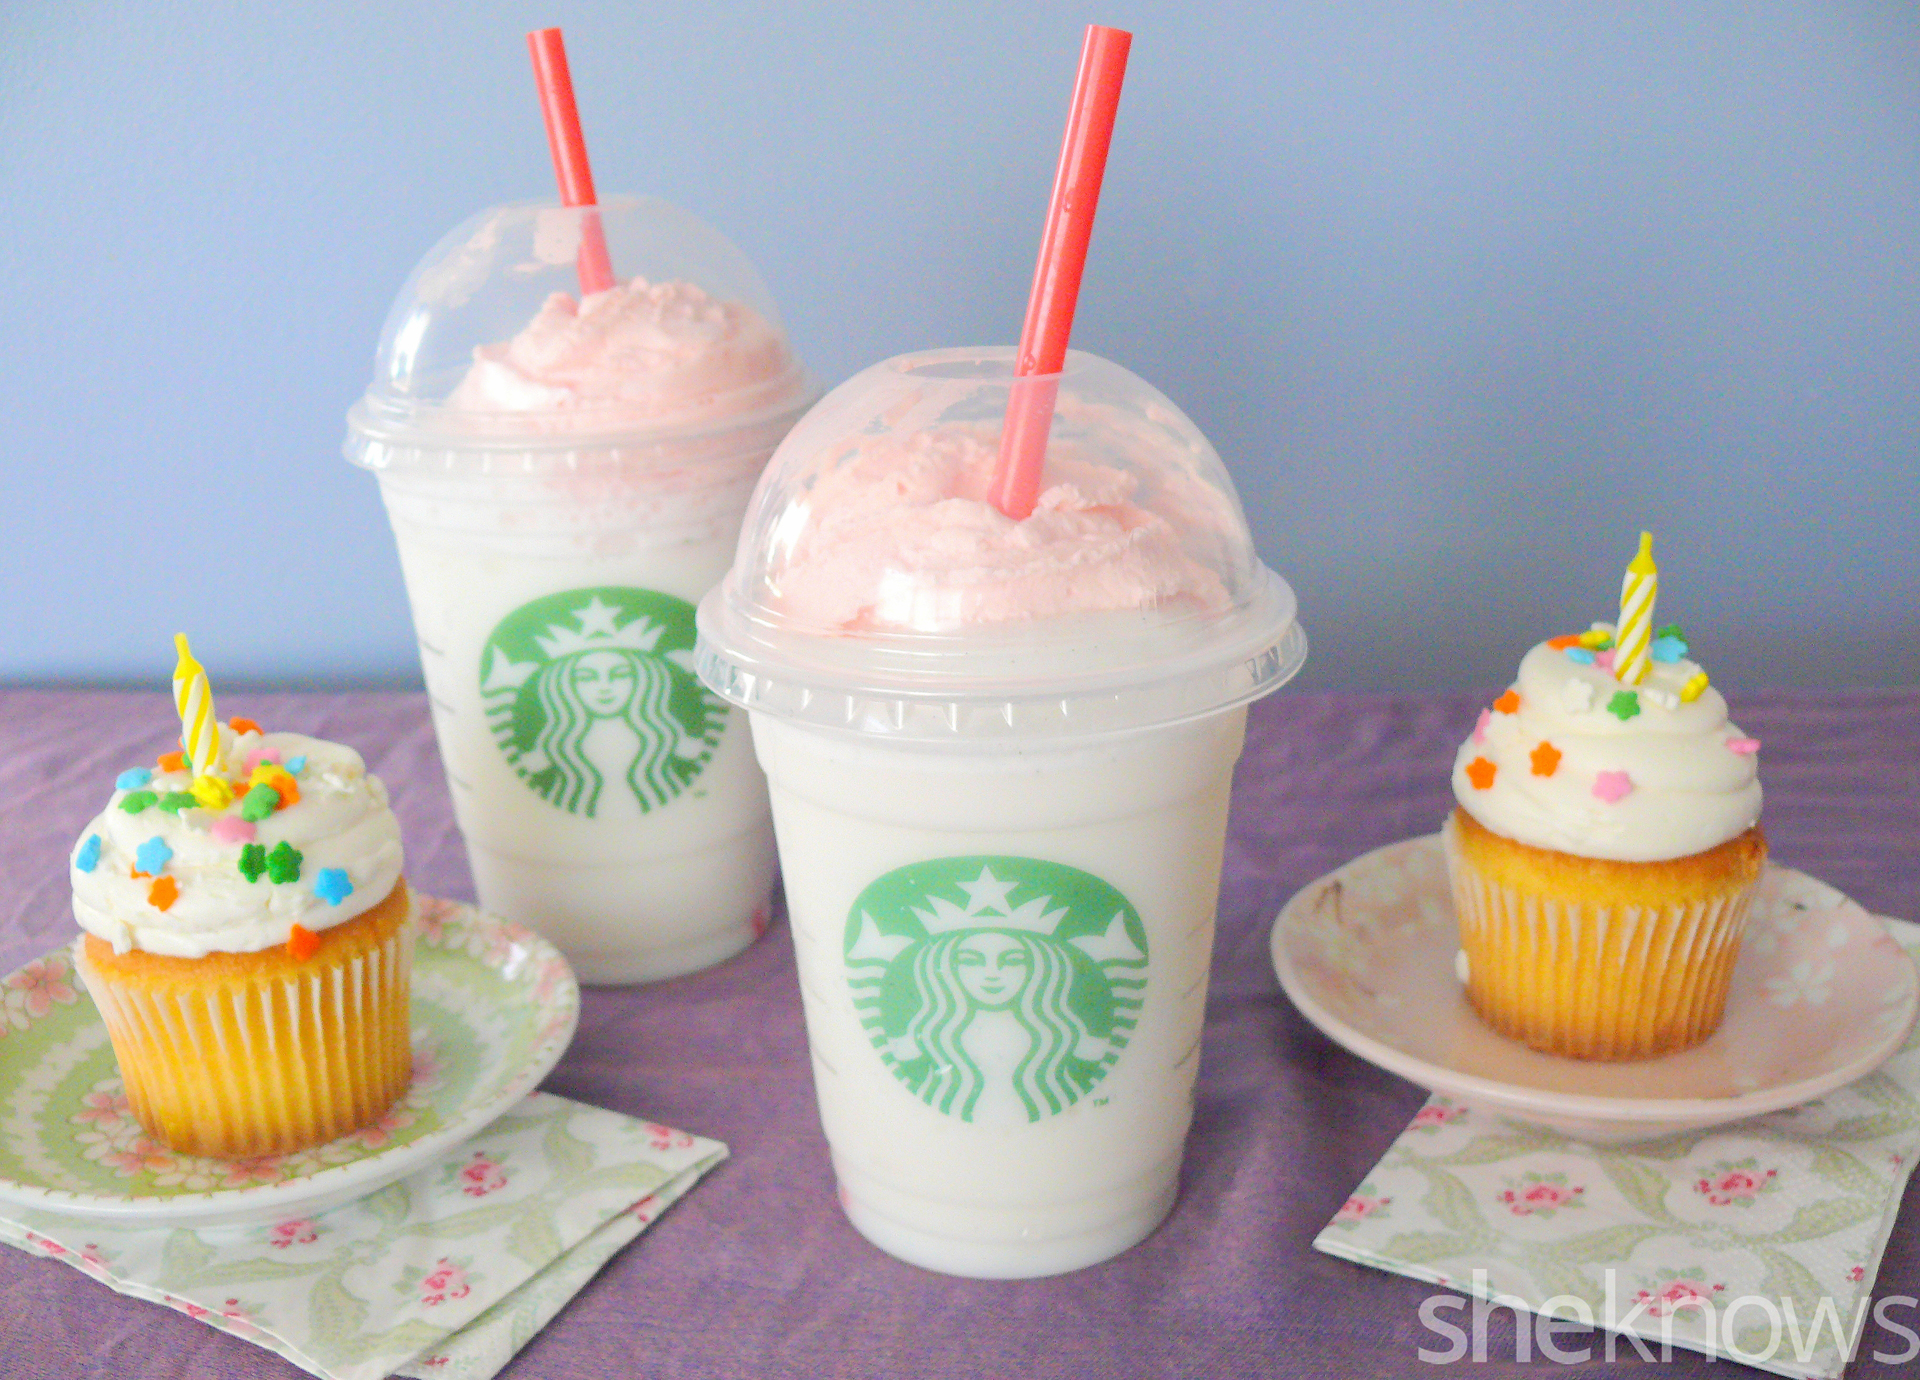 Starbucks Birthday Cake Frappuccino We Tried It Is It